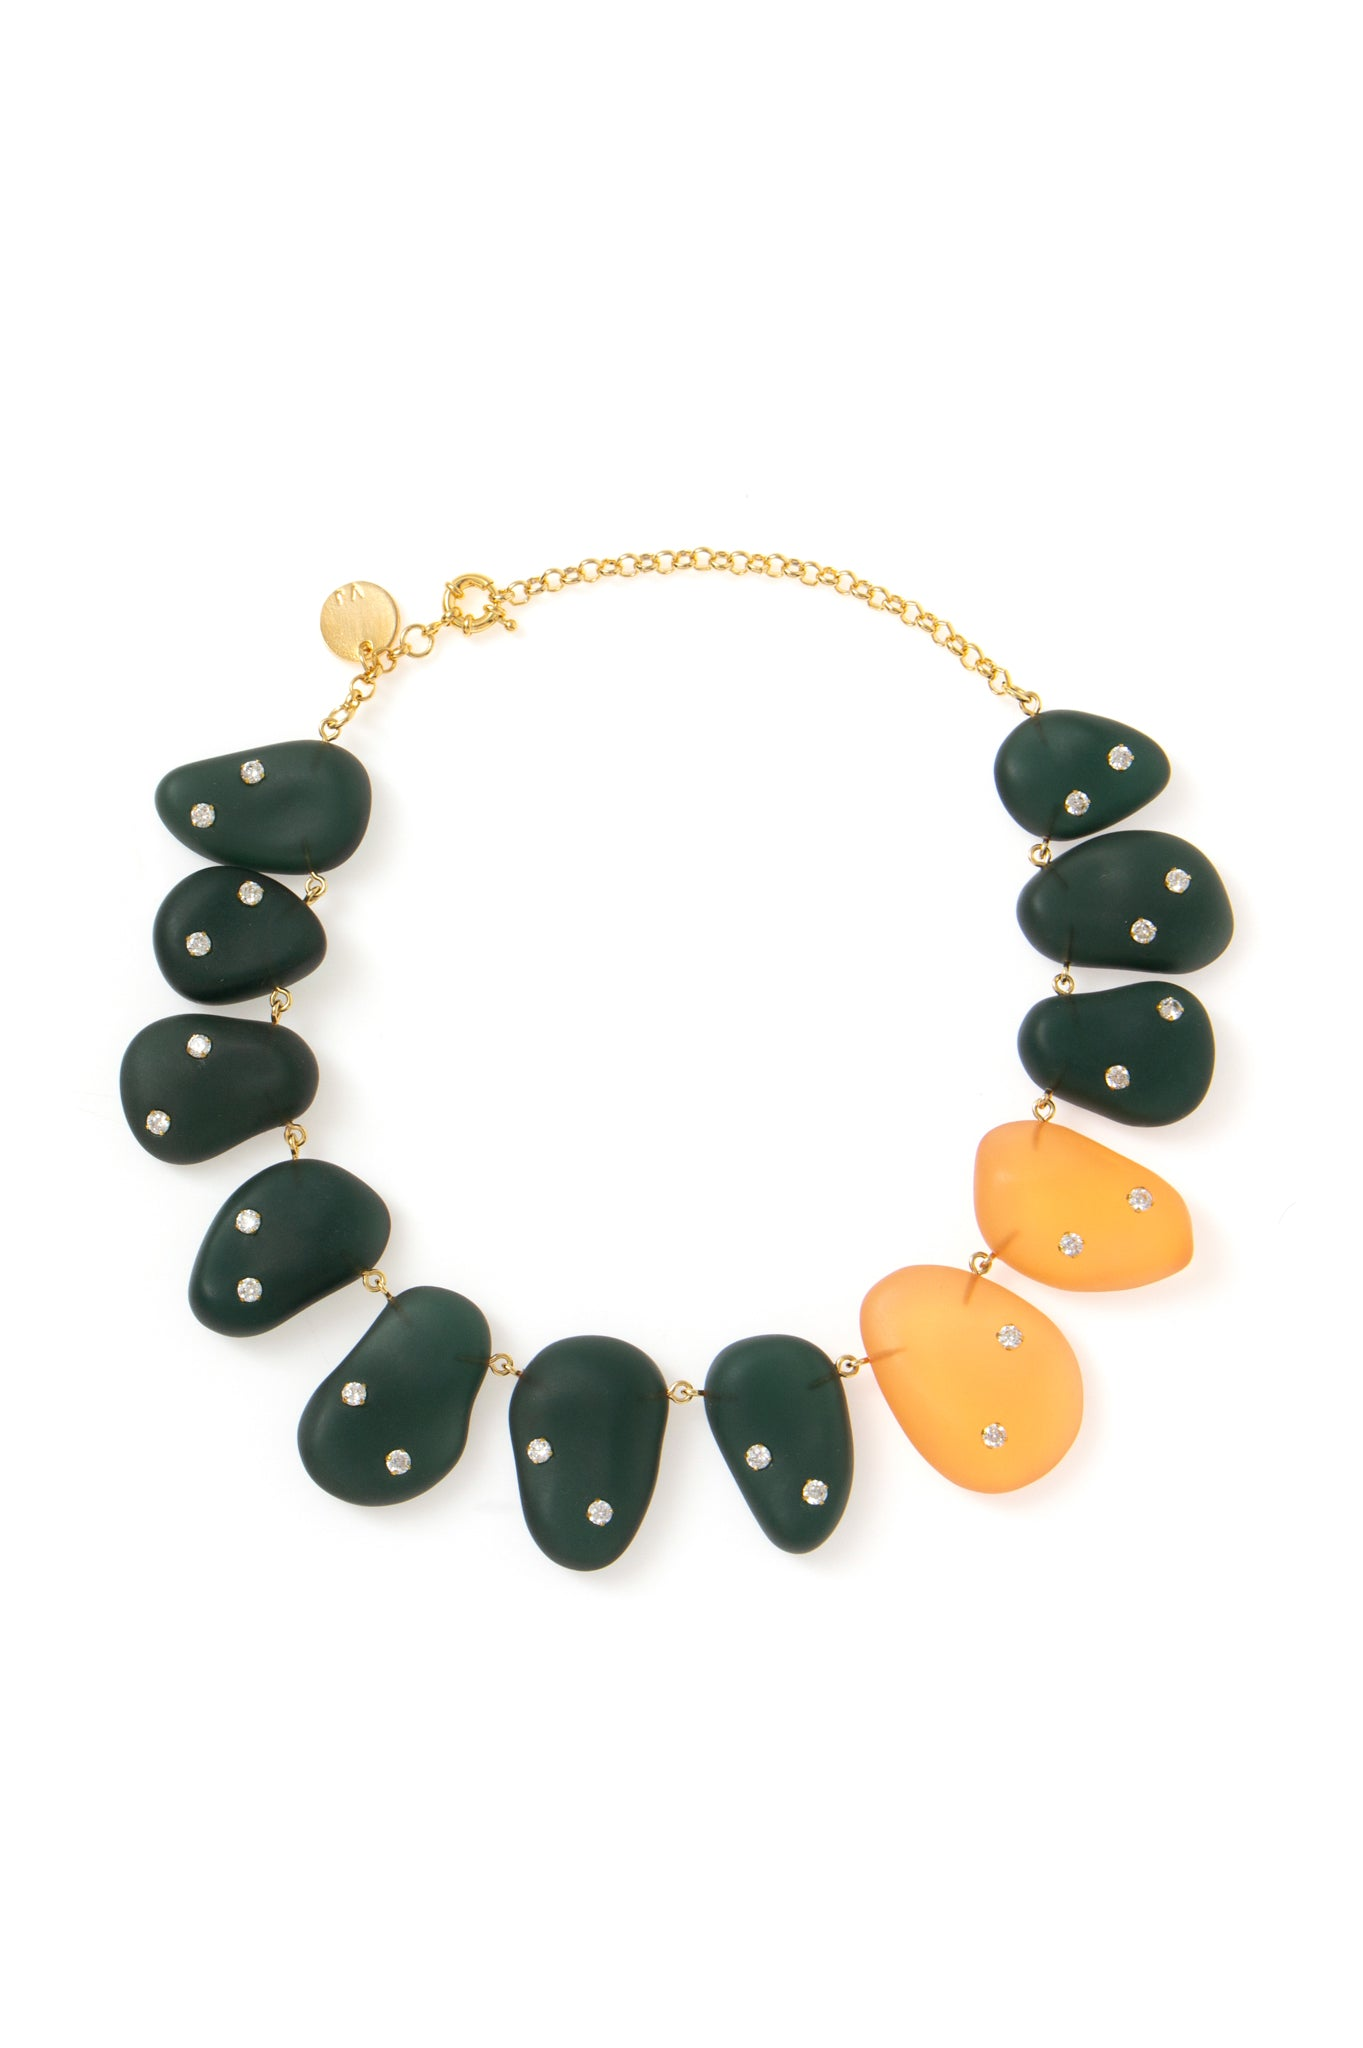 ORANGE/GREEN ORGANIC NECKLACE